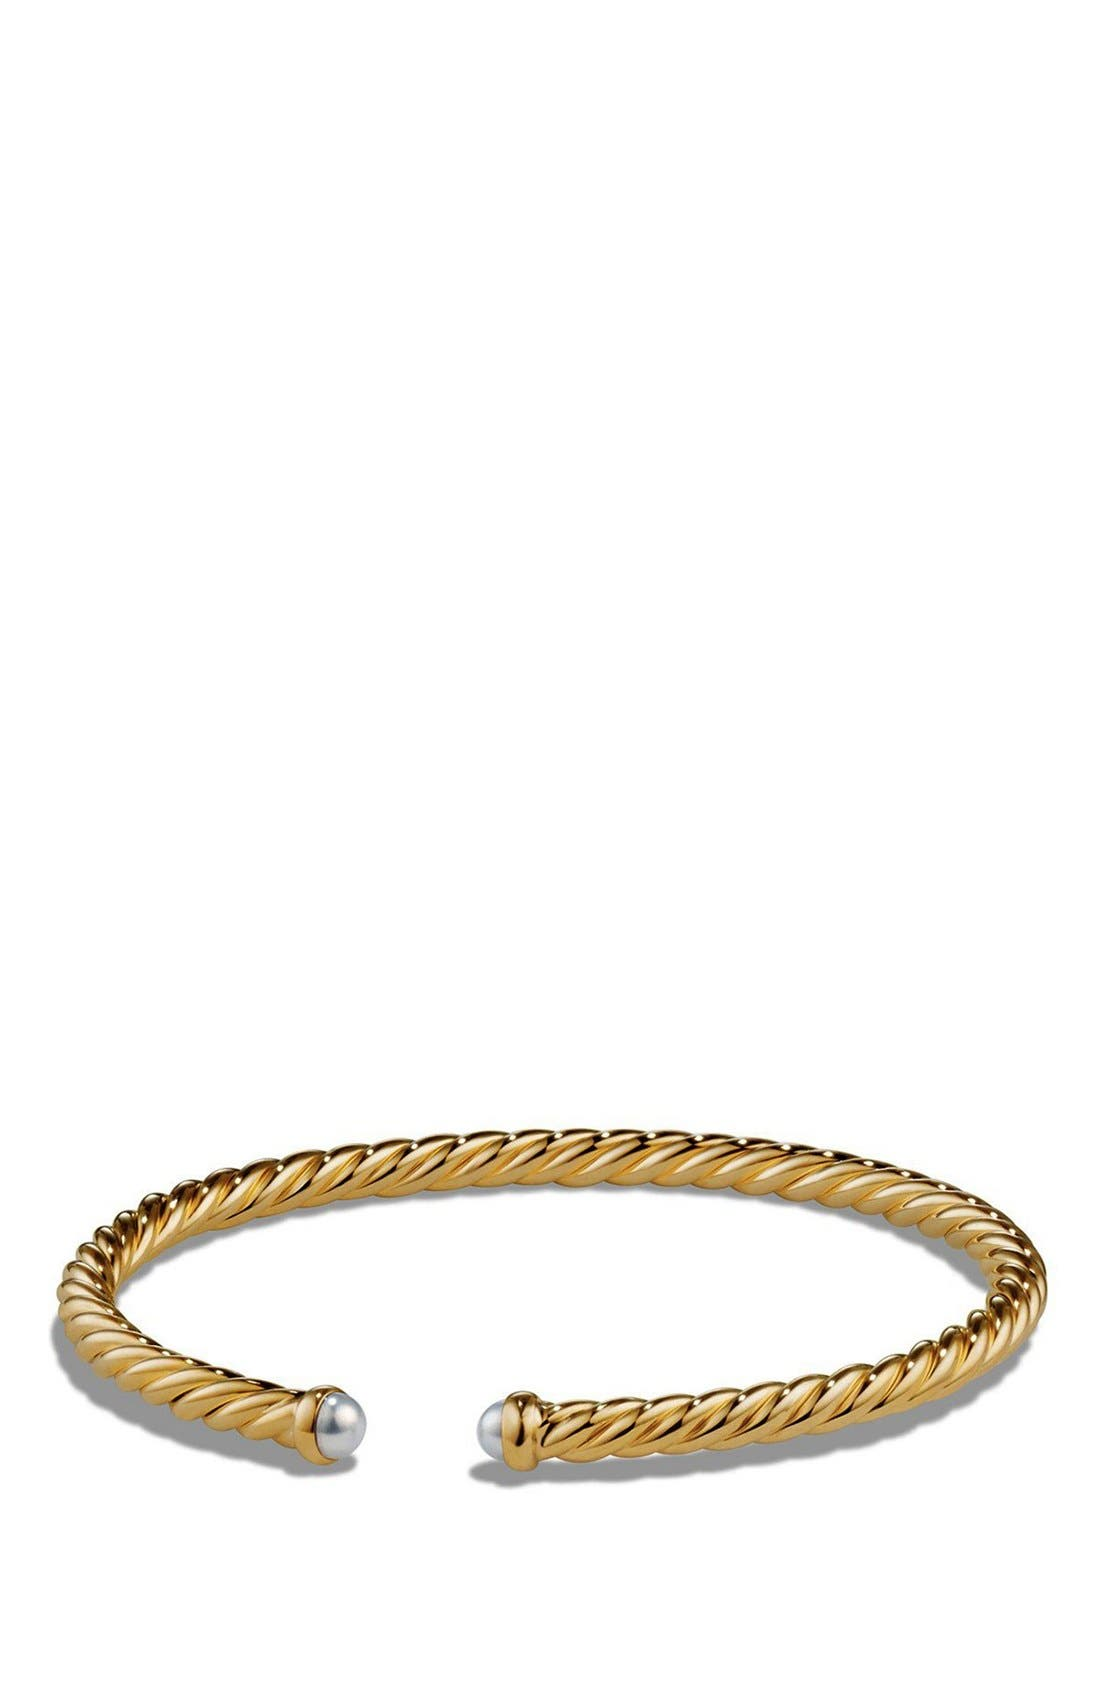 DAVID YURMAN 'Cable Classics' Cable Spira Bracelet in